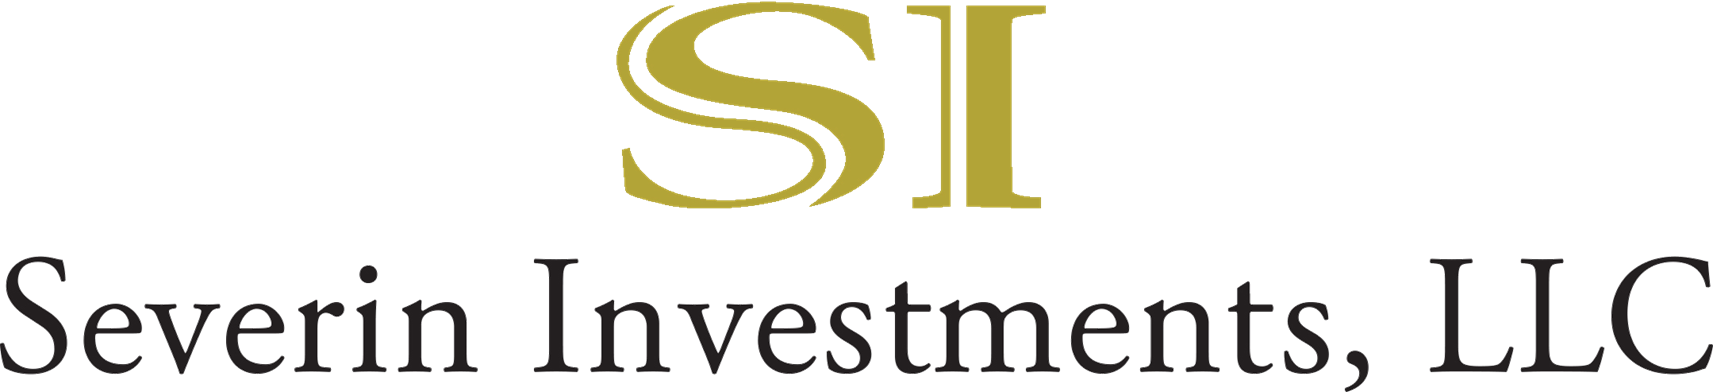 Severin Investments, LLC